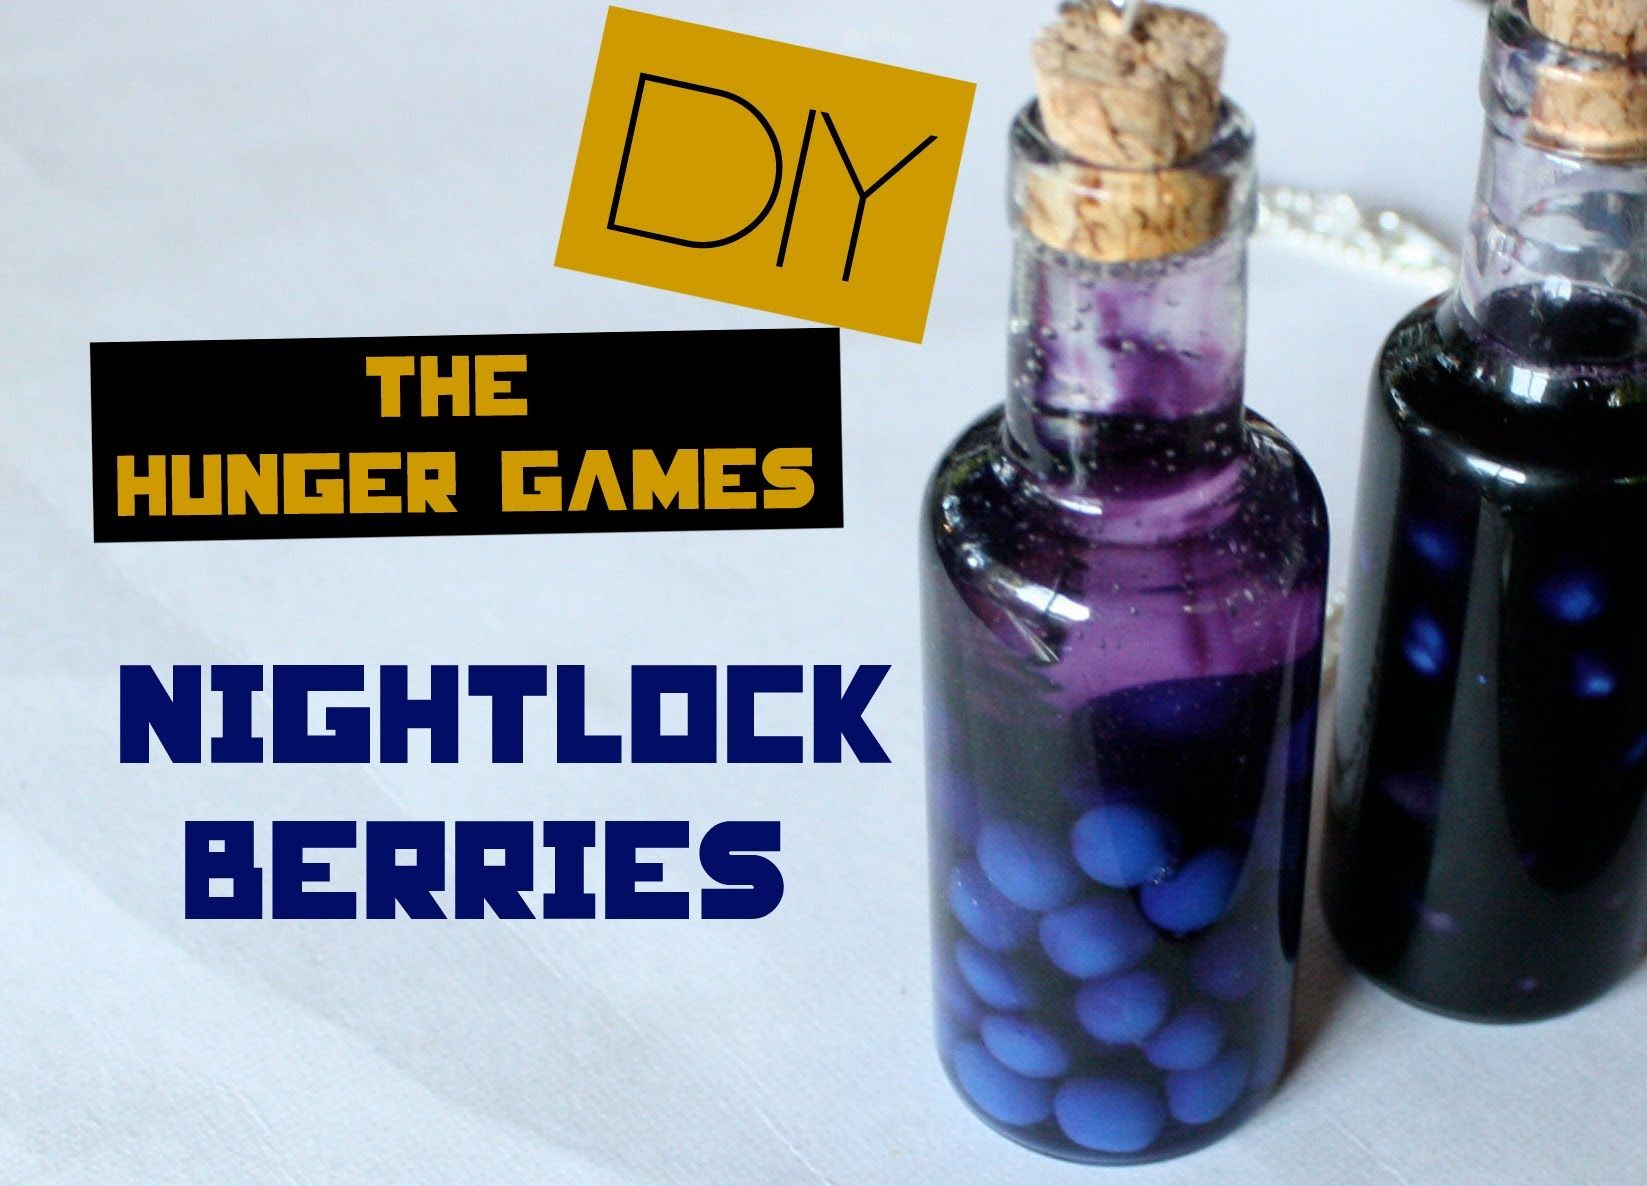 Nightlock Is A Wild Plant With Poisonous Berries That Katniss